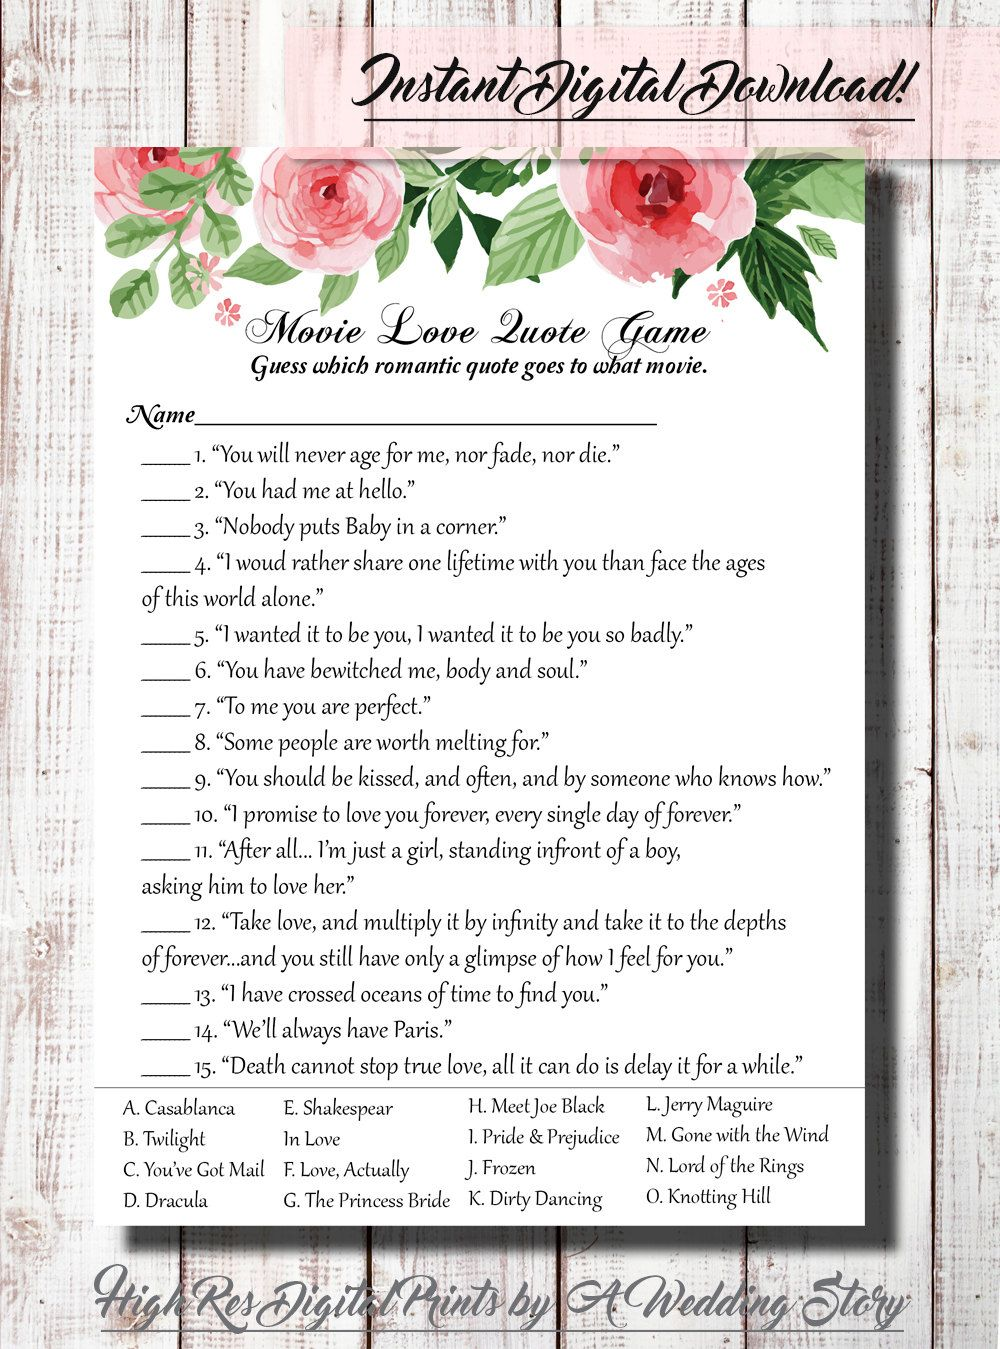 Comfy Movie Love Quote Match Game Printable Matchup Bridal Shower Game Floralshabby Flower Med Game Movie Quotes By Abridalstory Onetsy Movie Love Quote Match Game Printable Matchup Bridal Shower Game